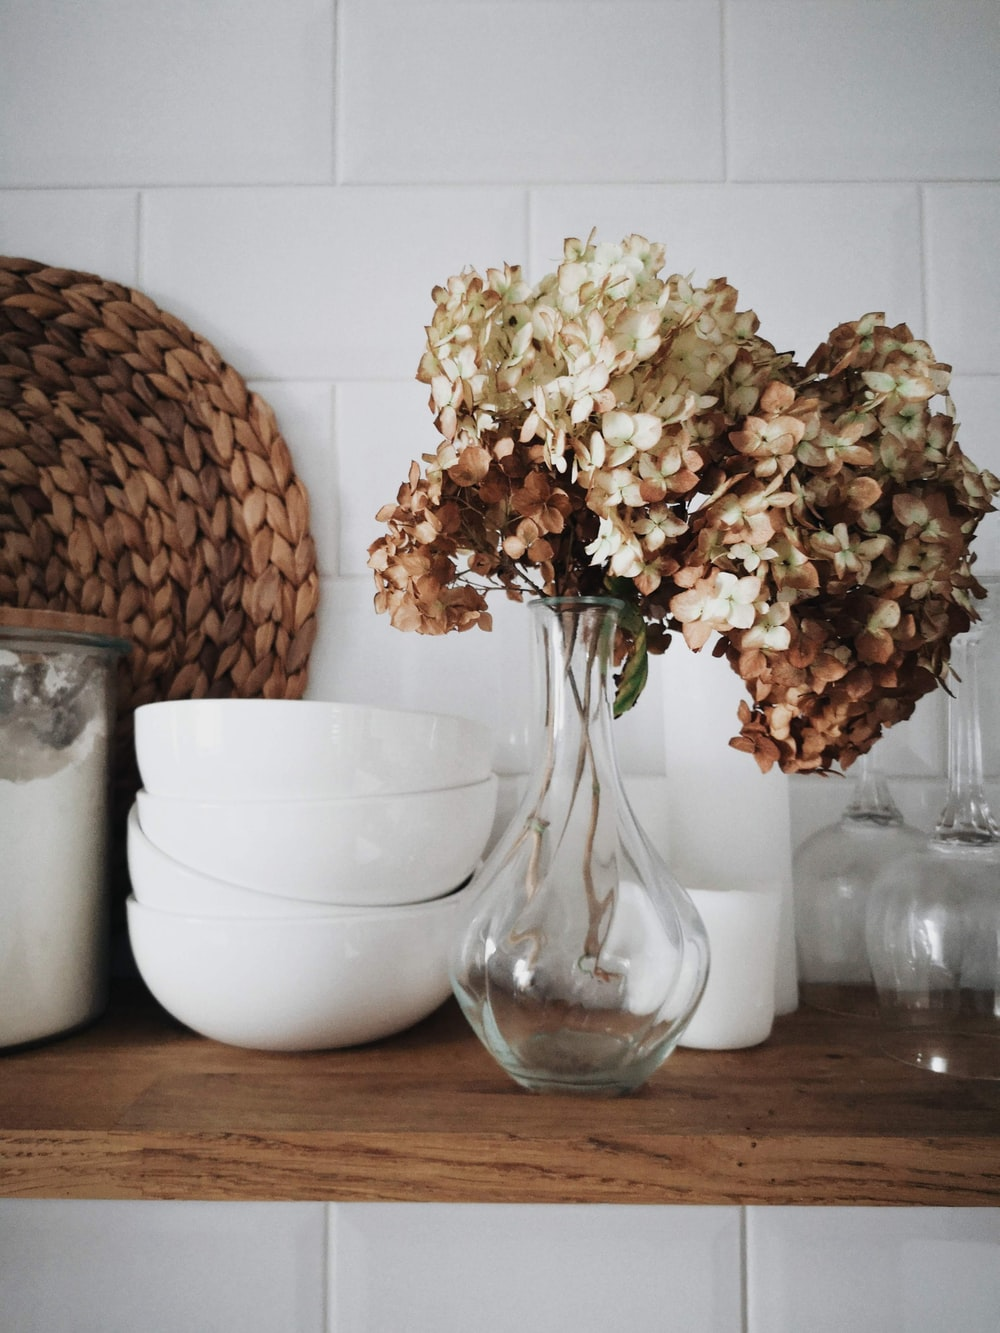 flowers in vase beside dishes